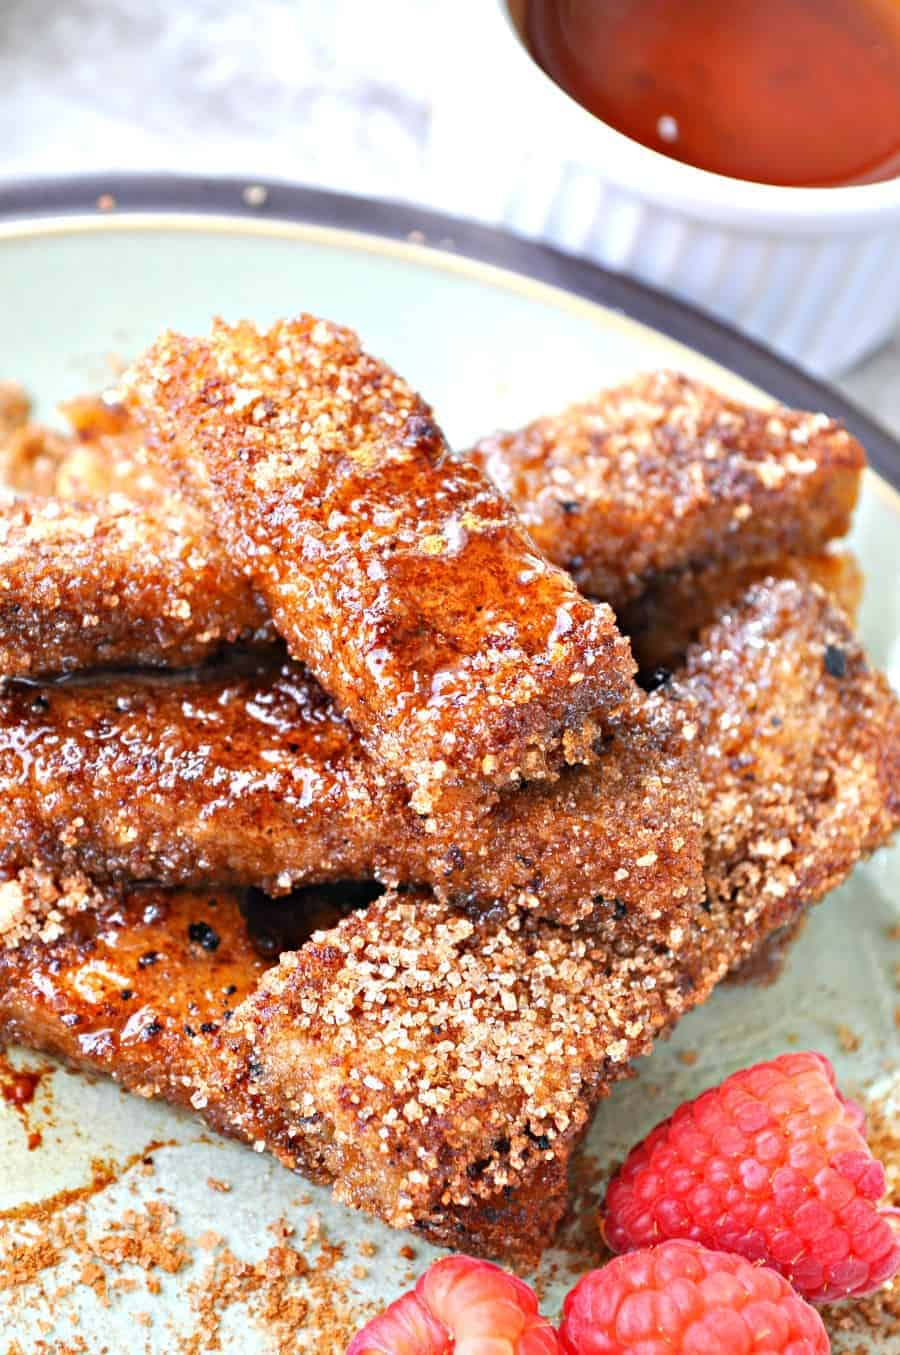 Vegan cinnamon and sugar french toast sticks rabbit and wolves have you ever had the french toast sticks from burger king i looooooved them when i was a wee child we were always pretty busy when i was a kid solutioingenieria Images